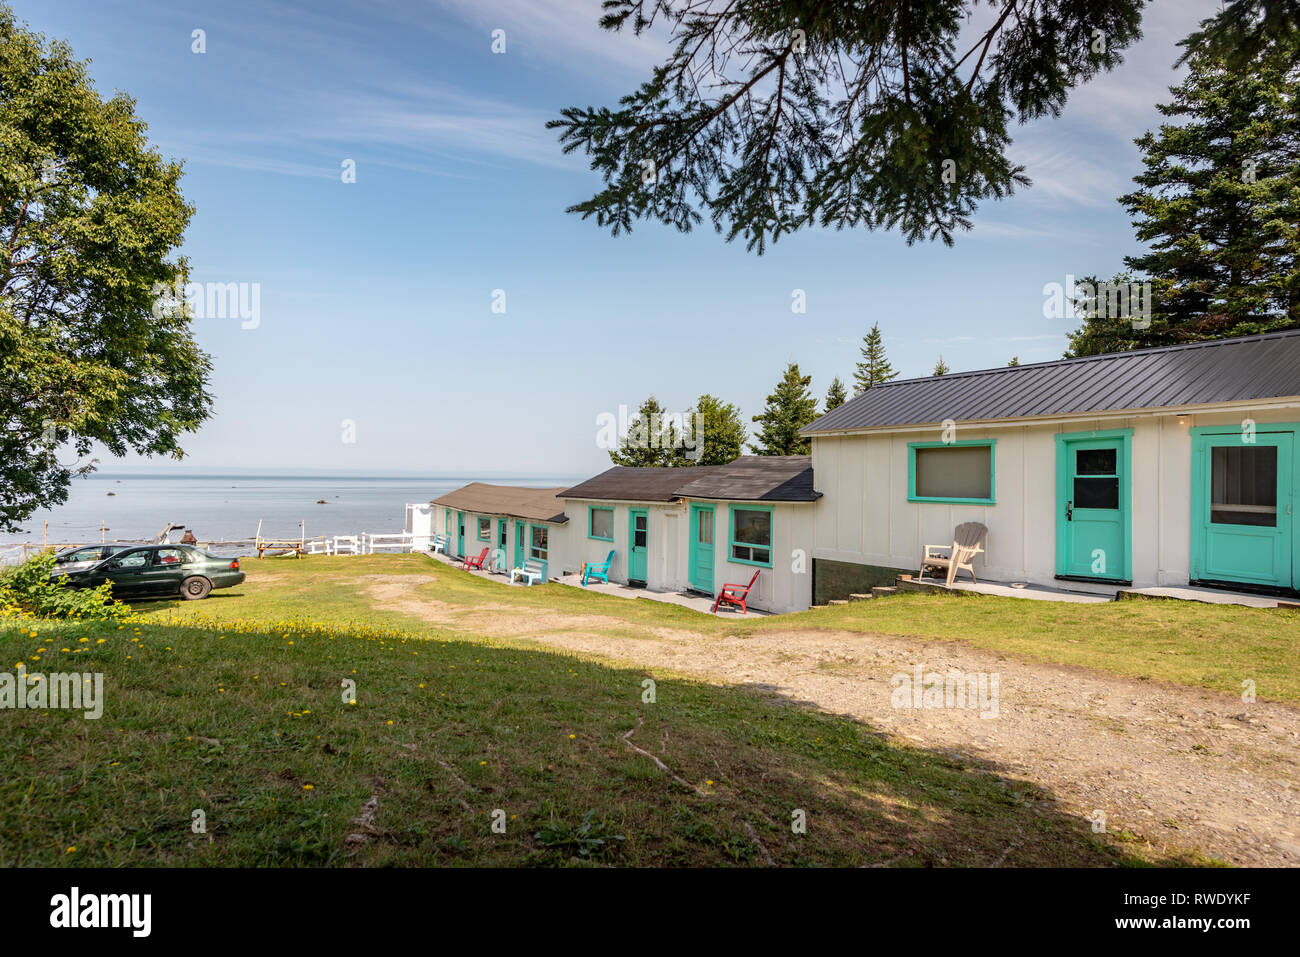 Old but comfy motel painted in white and light blue overlooking the St.Laurence River, Province of Quebec, Canada - Stock Image